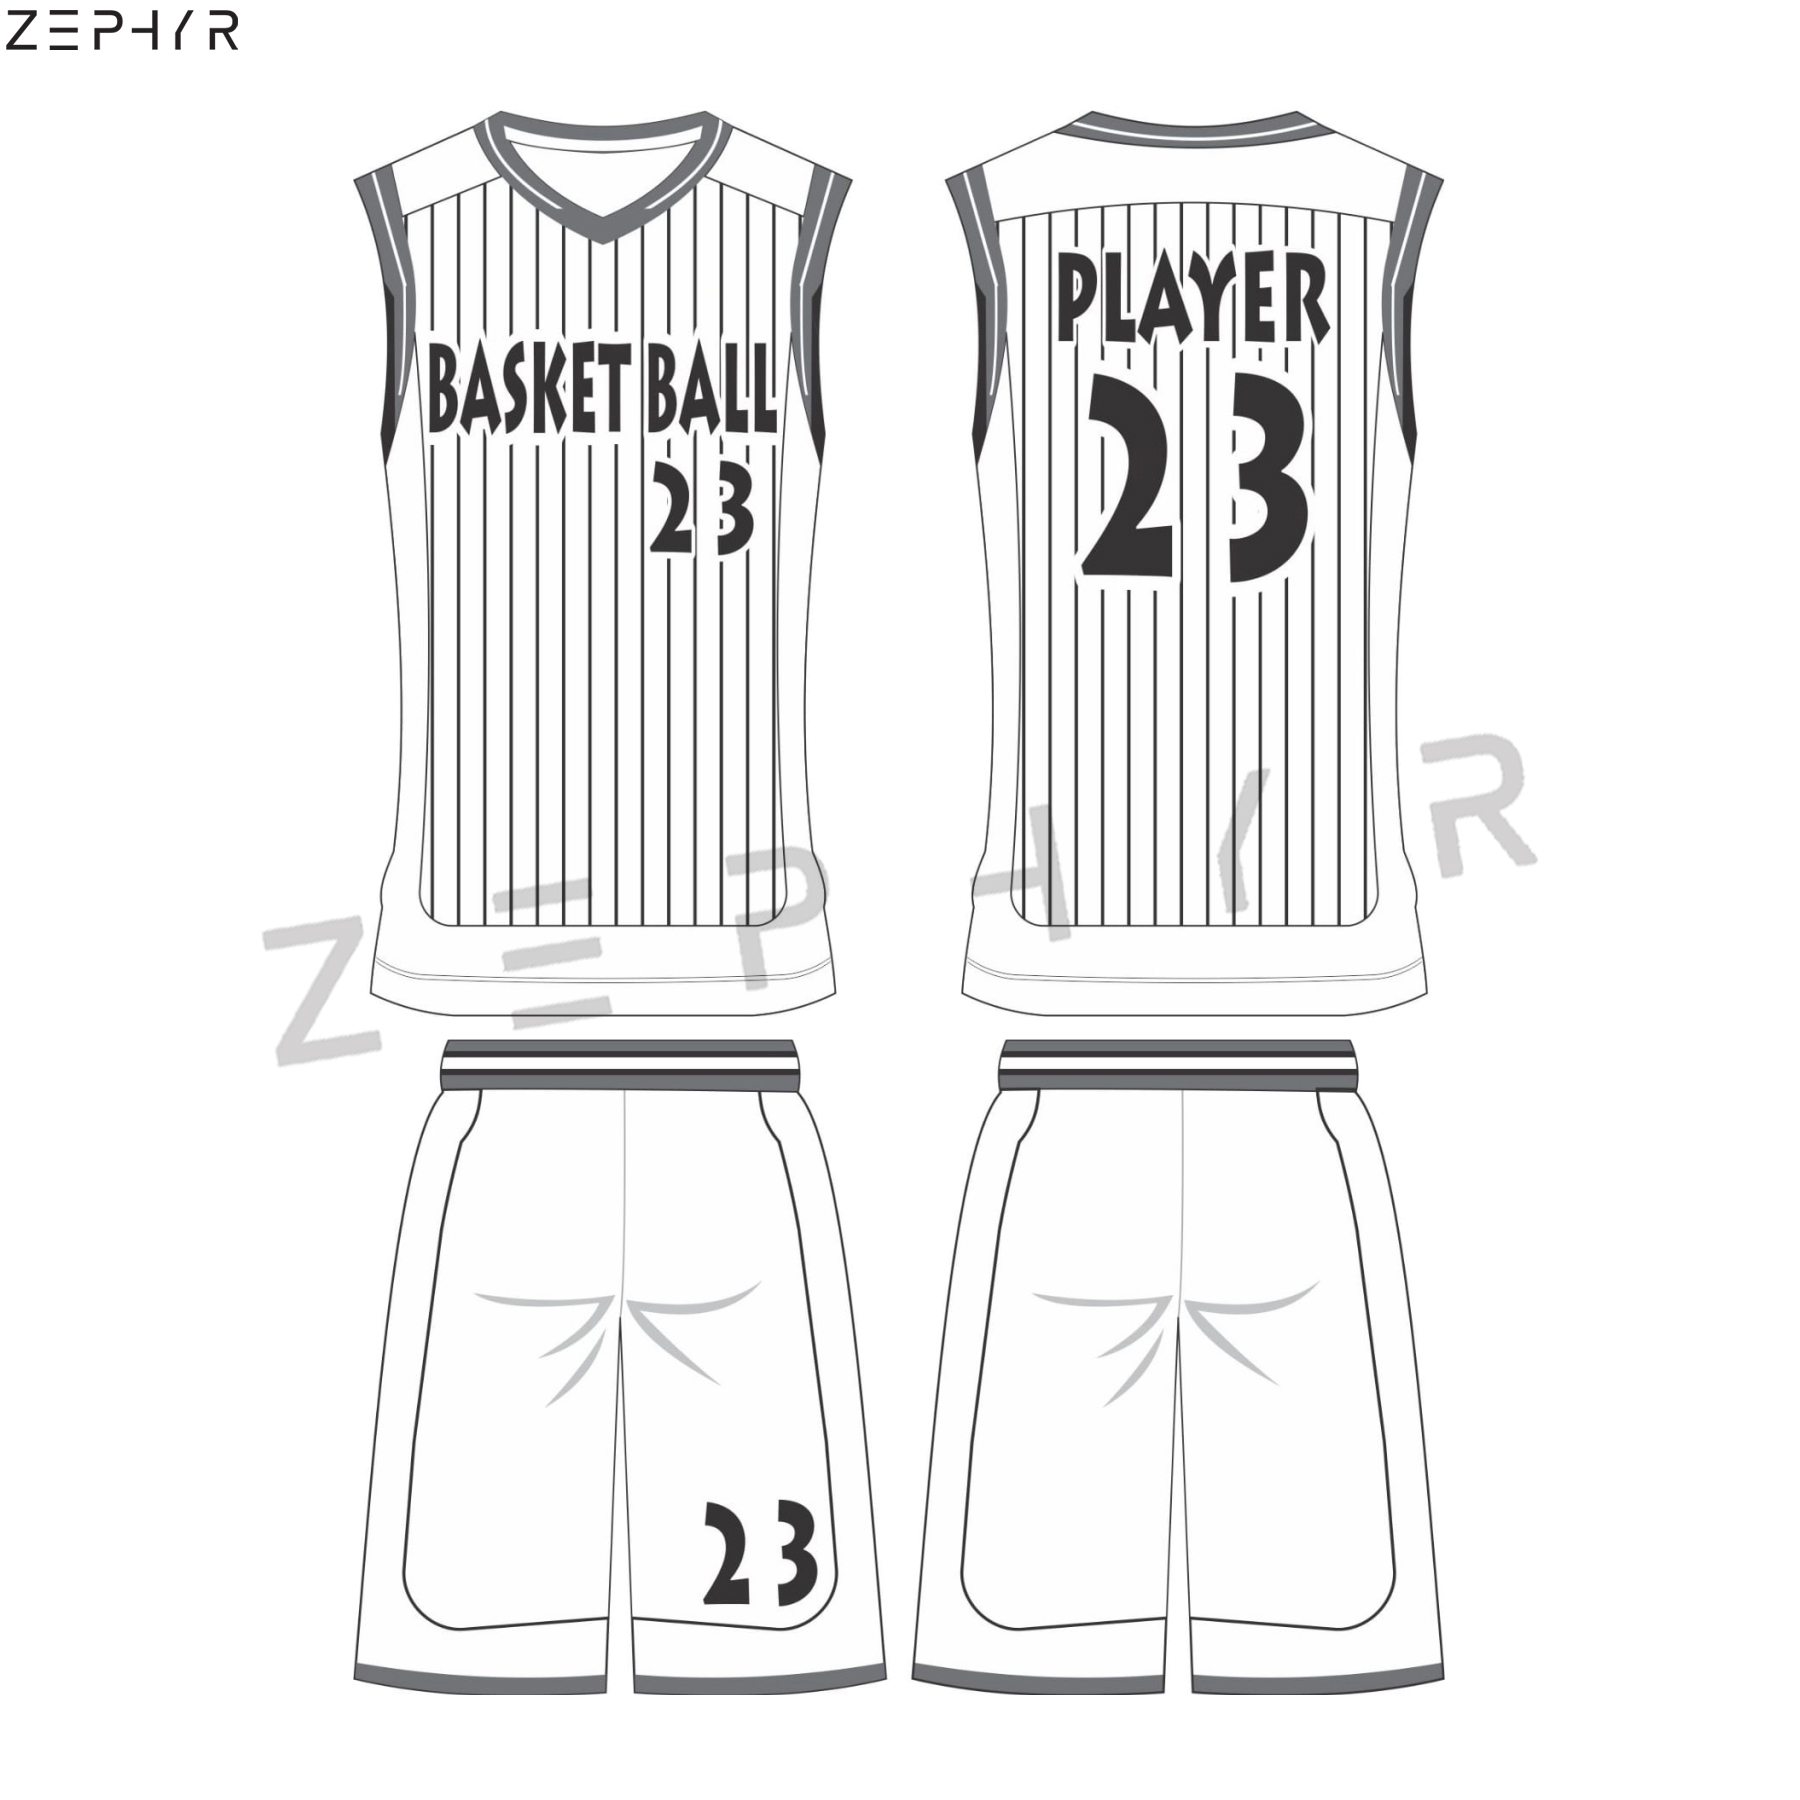 Jugend uniformen großhandel billig reversible basketball uniformen neue design basketball trikots set